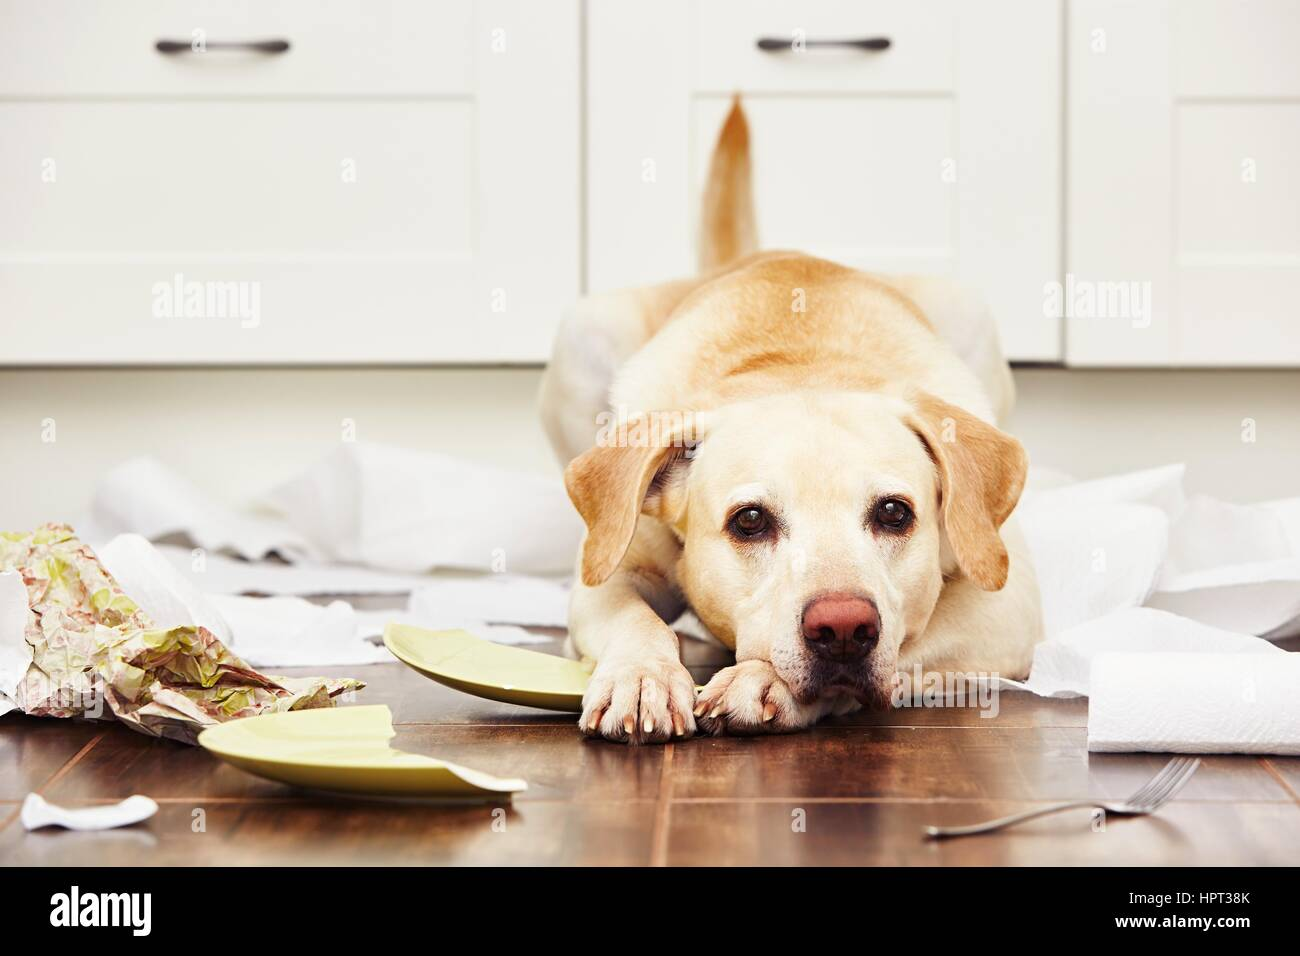 Naughty dog - Lying dog in the middle of mess in the kitchen. - Stock Image